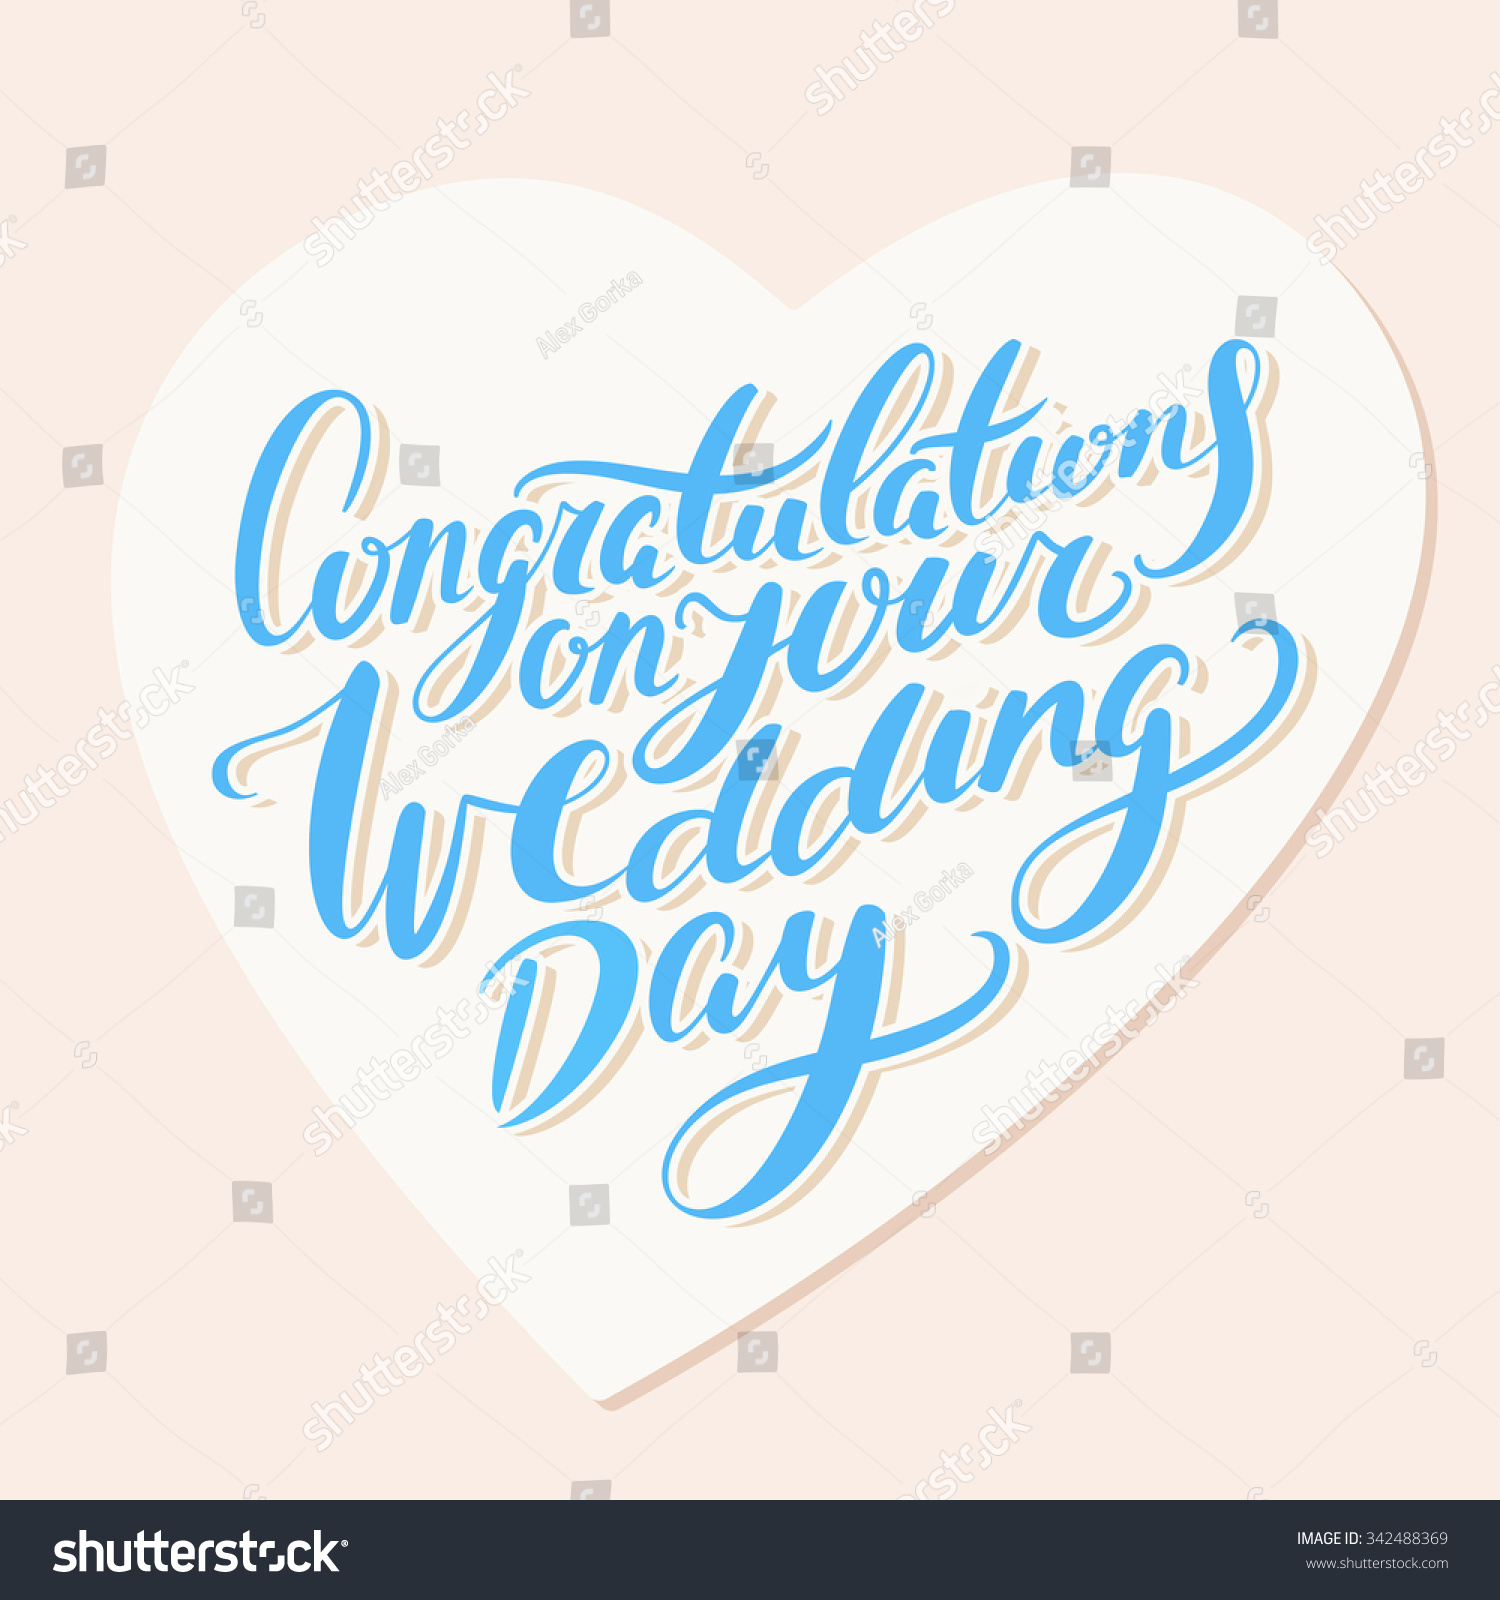 congratulations on your wedding day greeting card